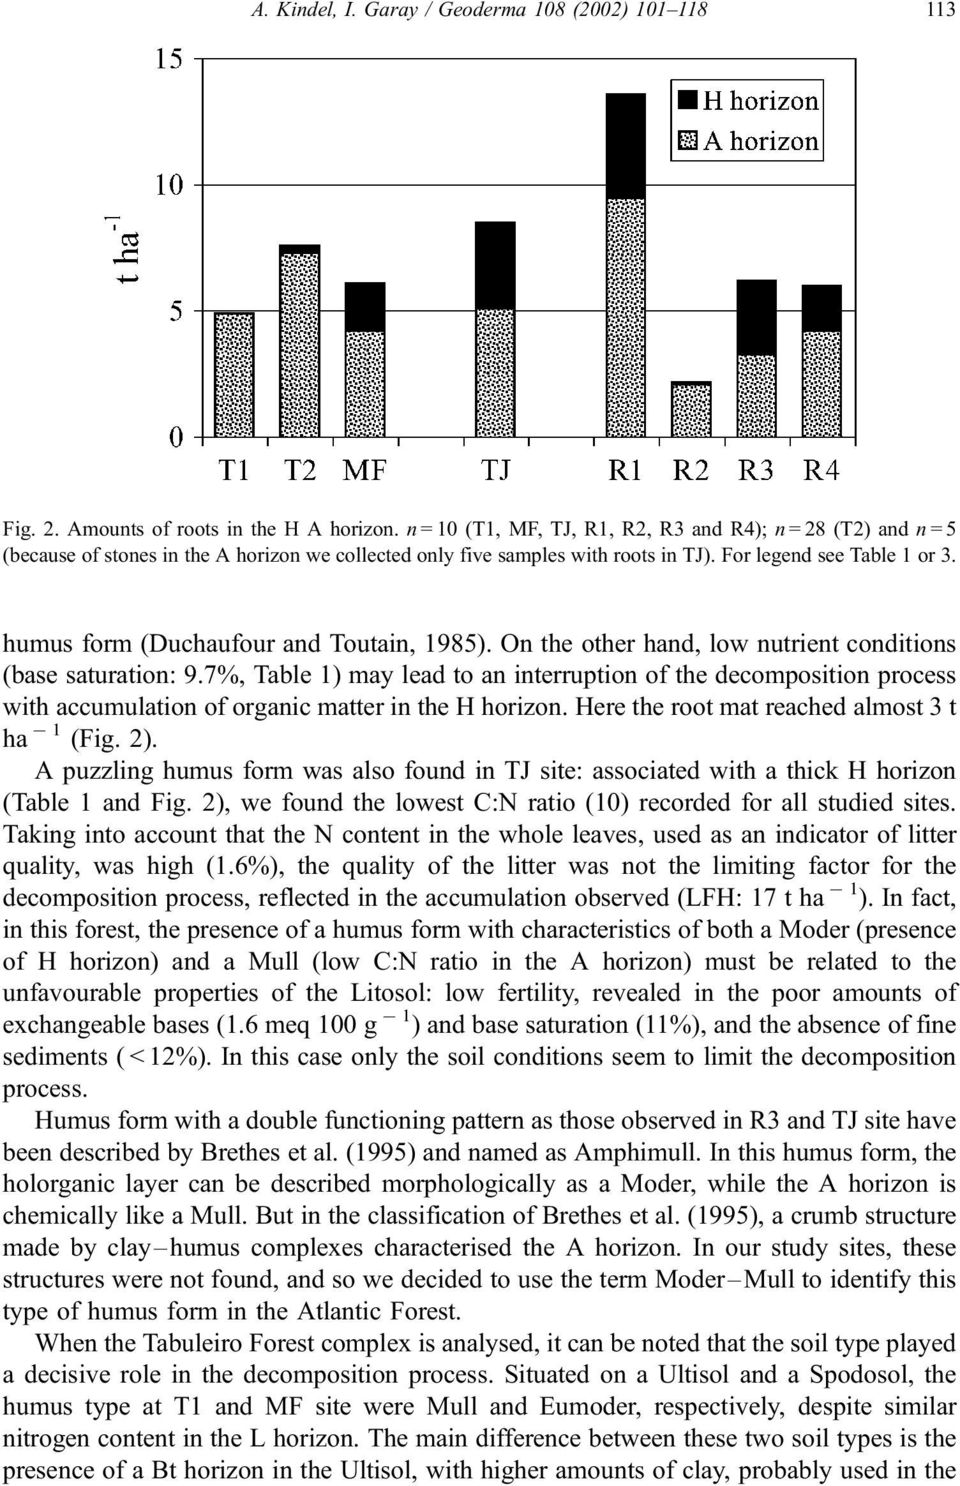 humus form (Duchaufour and Toutain, 1985). On the other hand, low nutrient conditions (base saturation: 9.